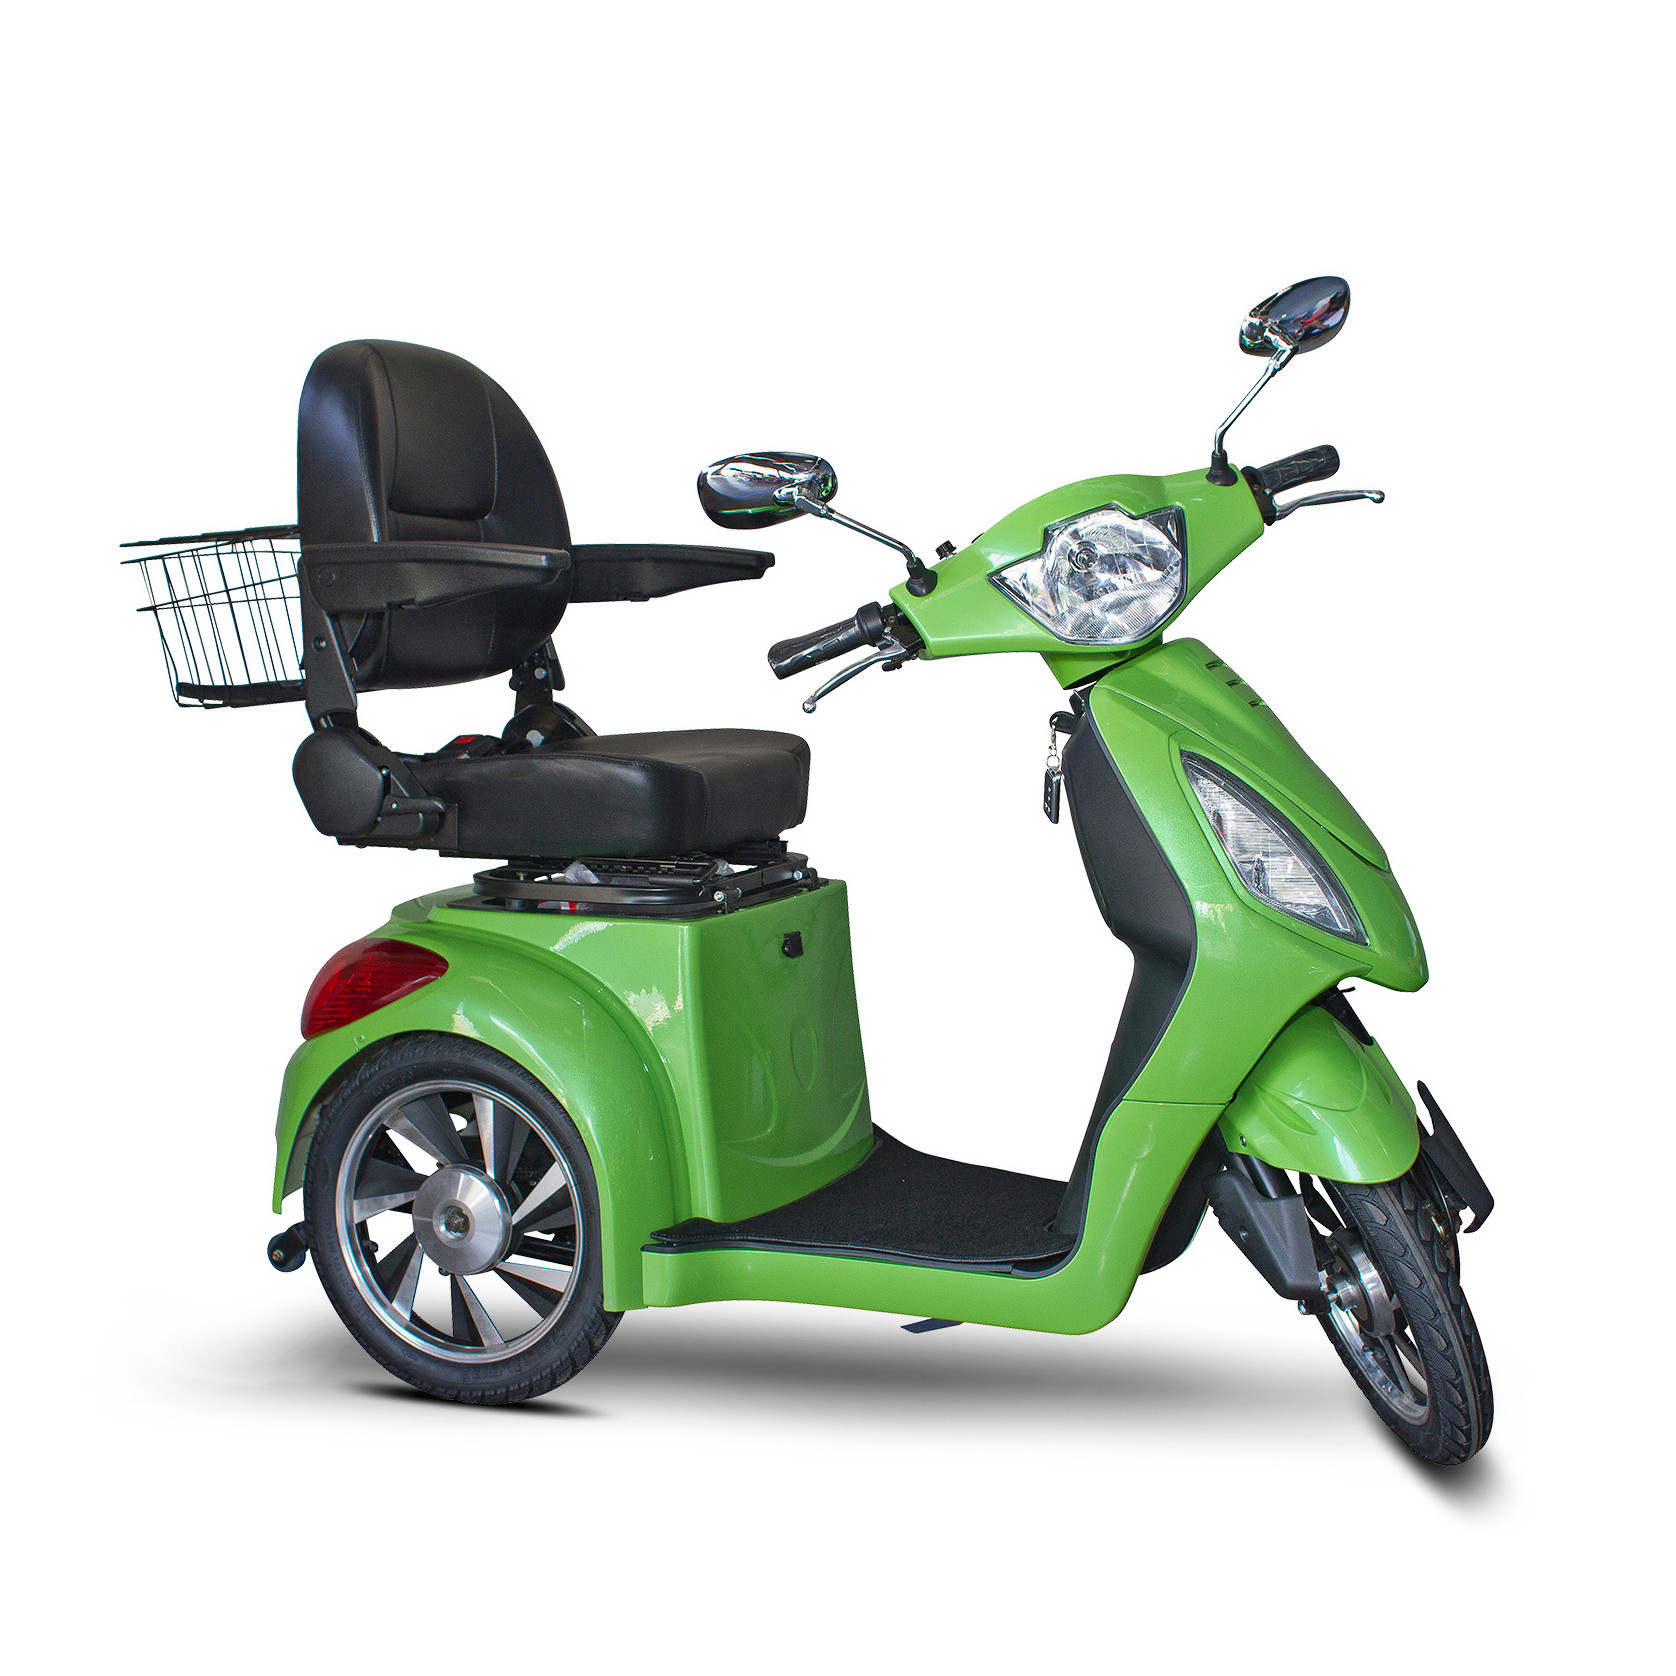 Ew 85 senior mobility scooter for Motorized scooters for seniors